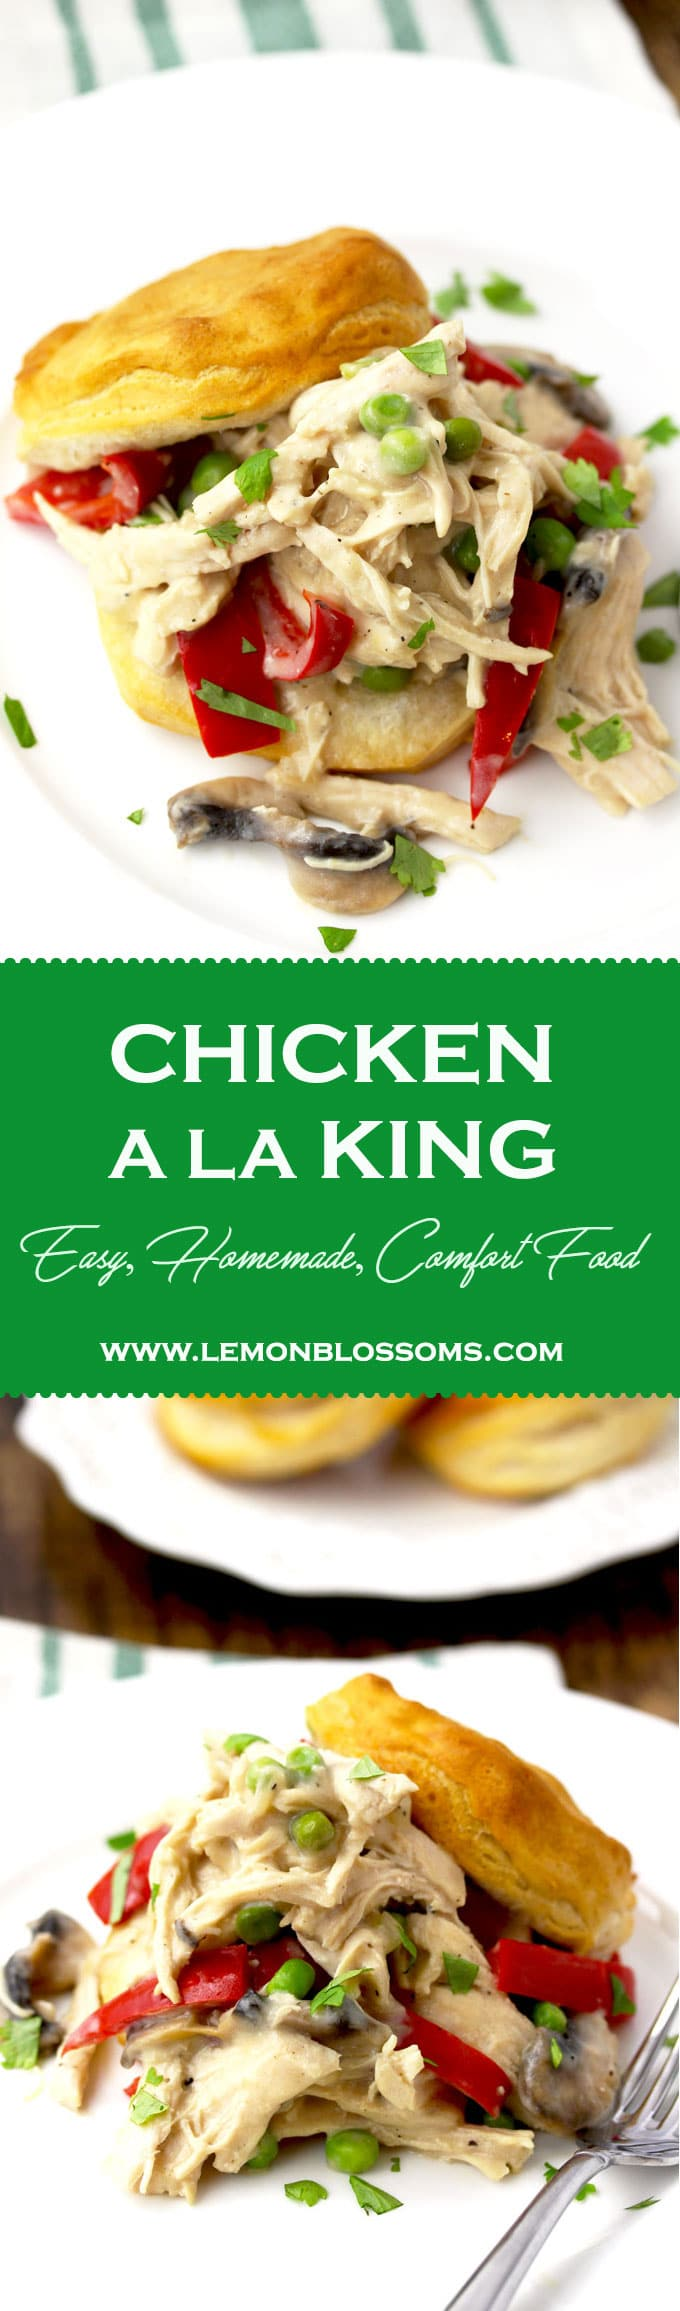 This creamy Chicken A La King recipe is pure comfort food. Made with chicken, mushrooms, red bell peppers and peas in a tasty white sauce. Serve it over biscuits, toast, rice or in a pastry shell for a fancier presentation! #chicken #recipe #classic #chickenalaking #easy #healthy #biscuits